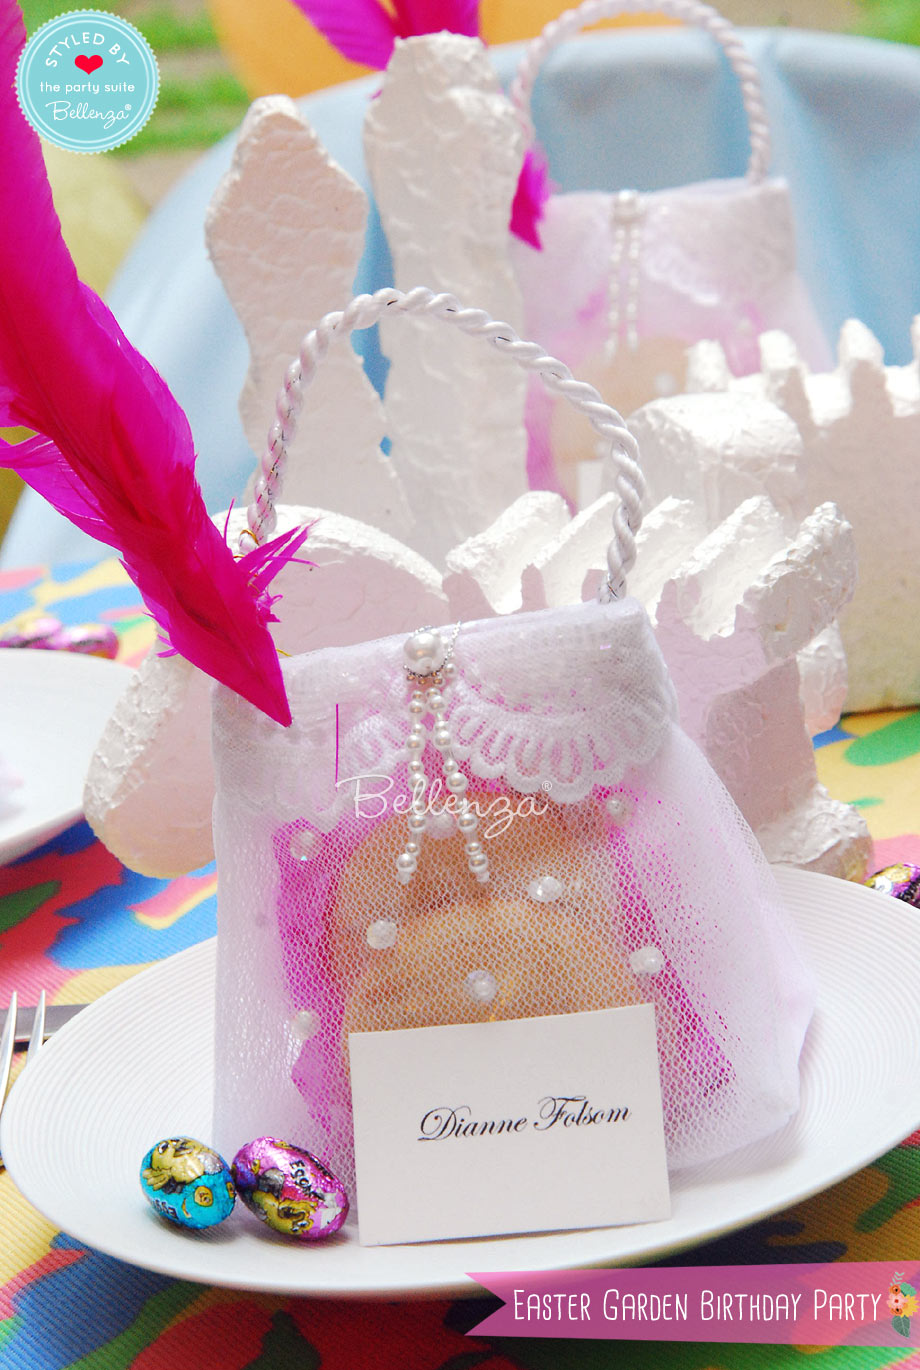 Place Settings with Easter Birthday Party Favors